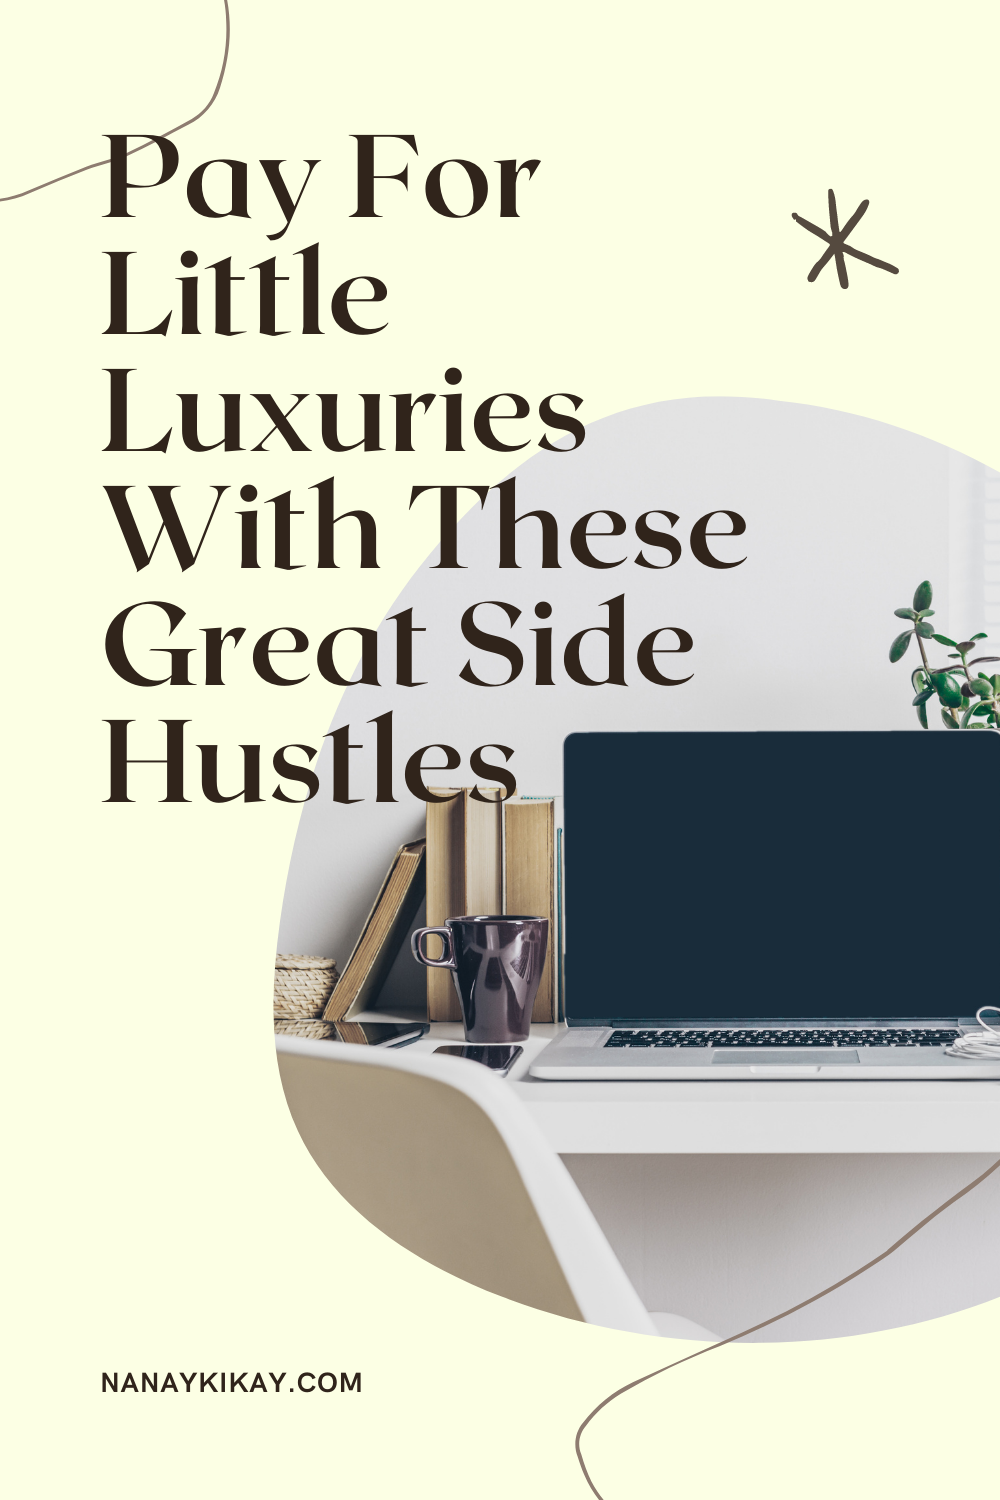 Pay For Little Luxuries With These Great Side Hustles